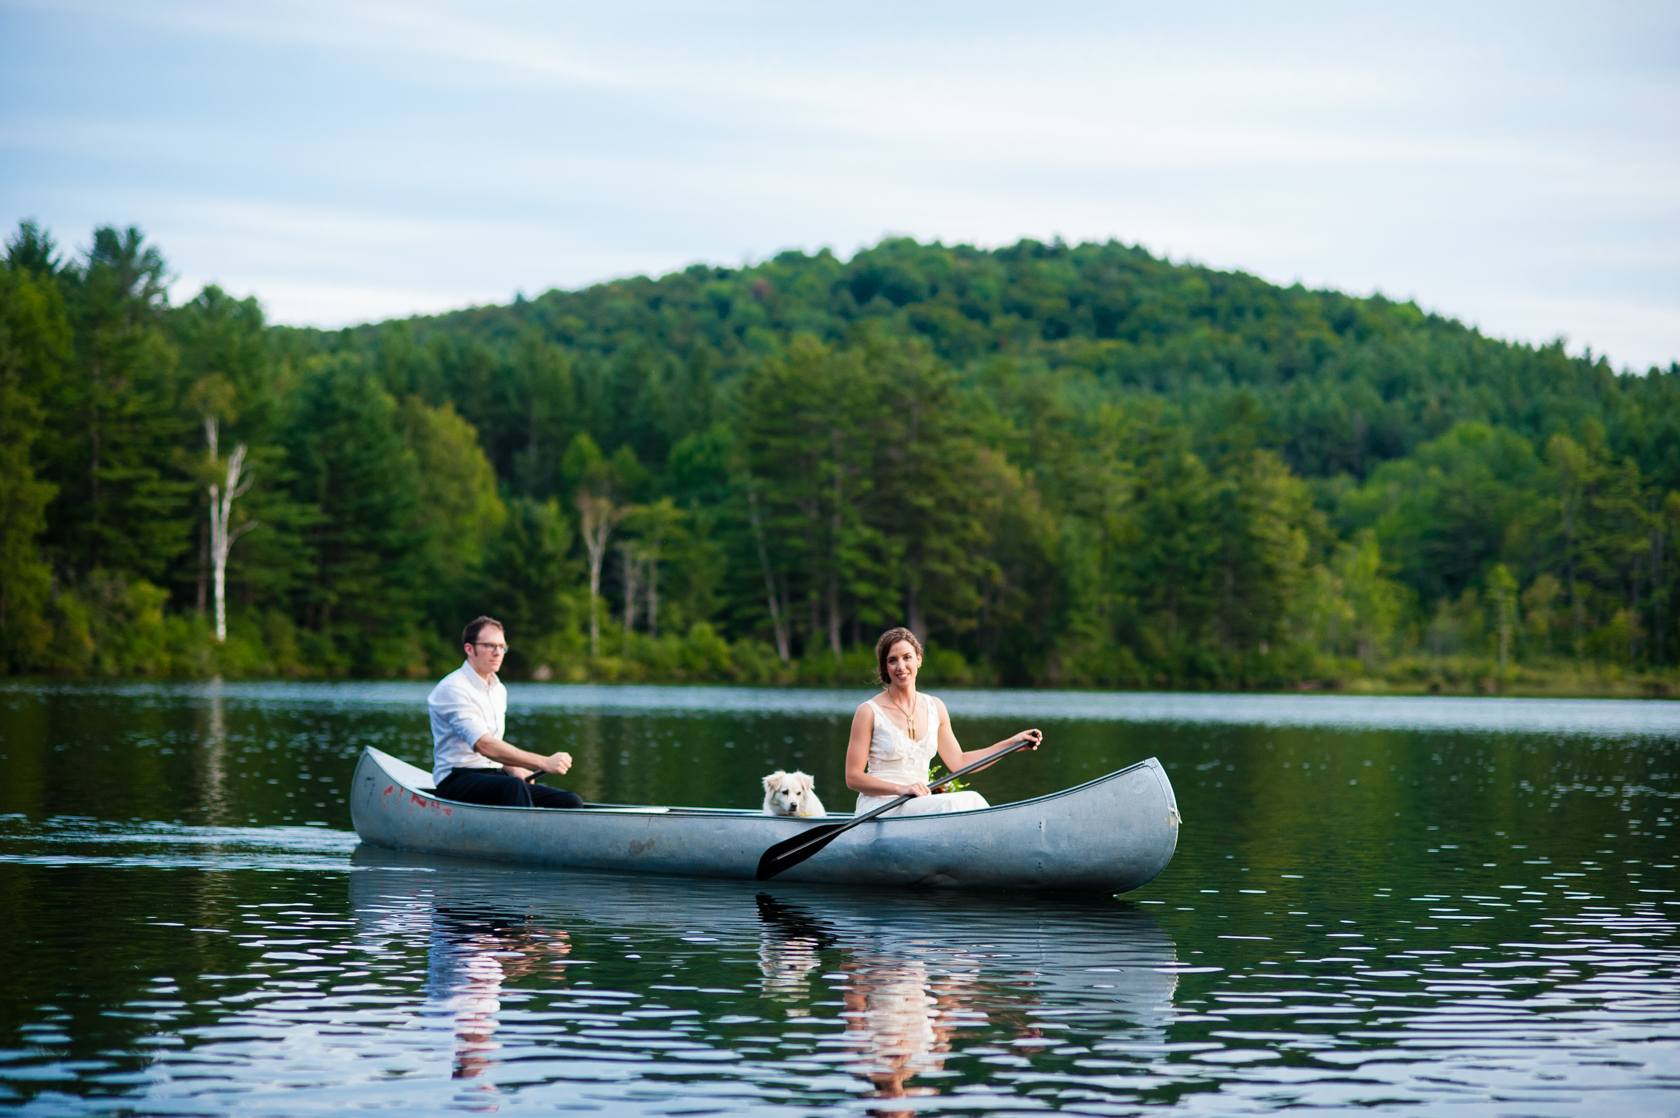 bride and groom having a blast paddling a canoe during their outdoor summer camp wedding